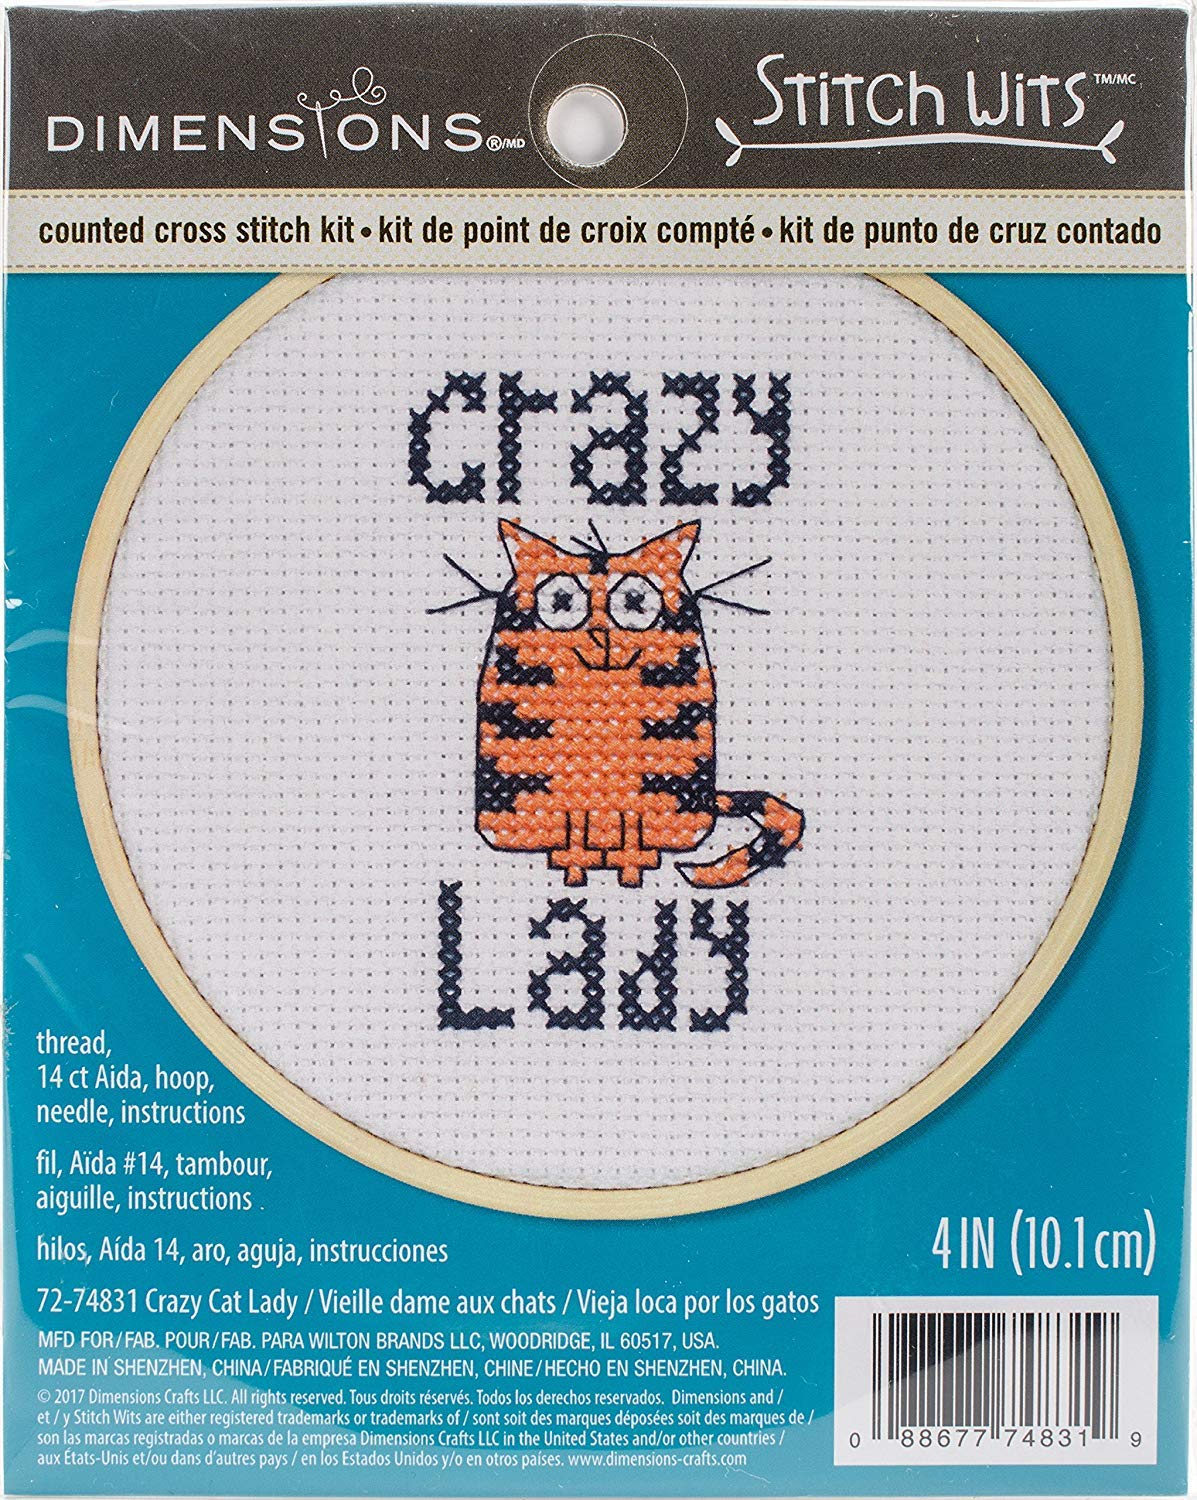 Amazon.com: Dimensions Mini Counted Cross Stitch Kit for Beginners, Crazy Cat Lady, 14 Count White Aida Cloth, 4